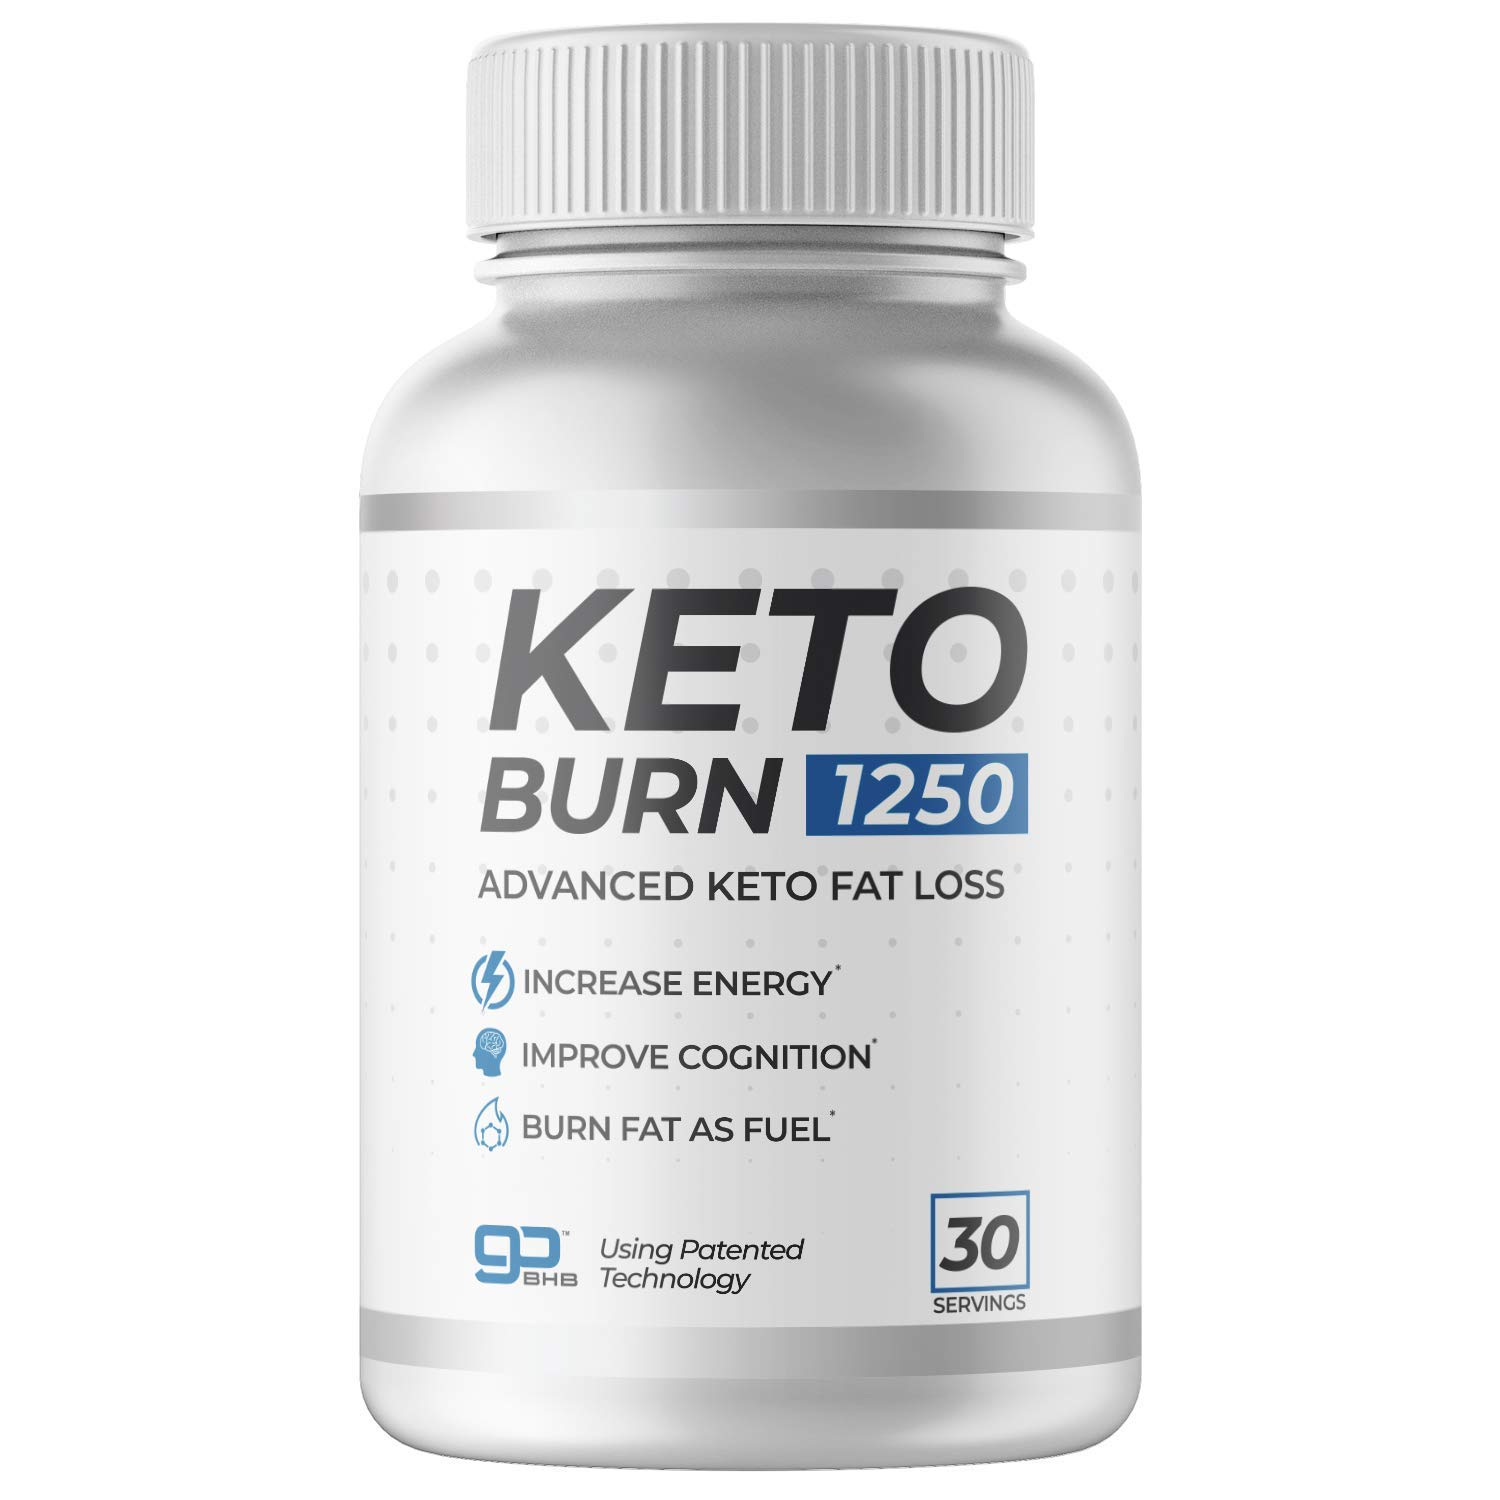 KETO BURN 1250-30 Servings The ONLY Keto Pill That Uses Patented Fat Loss Technology!